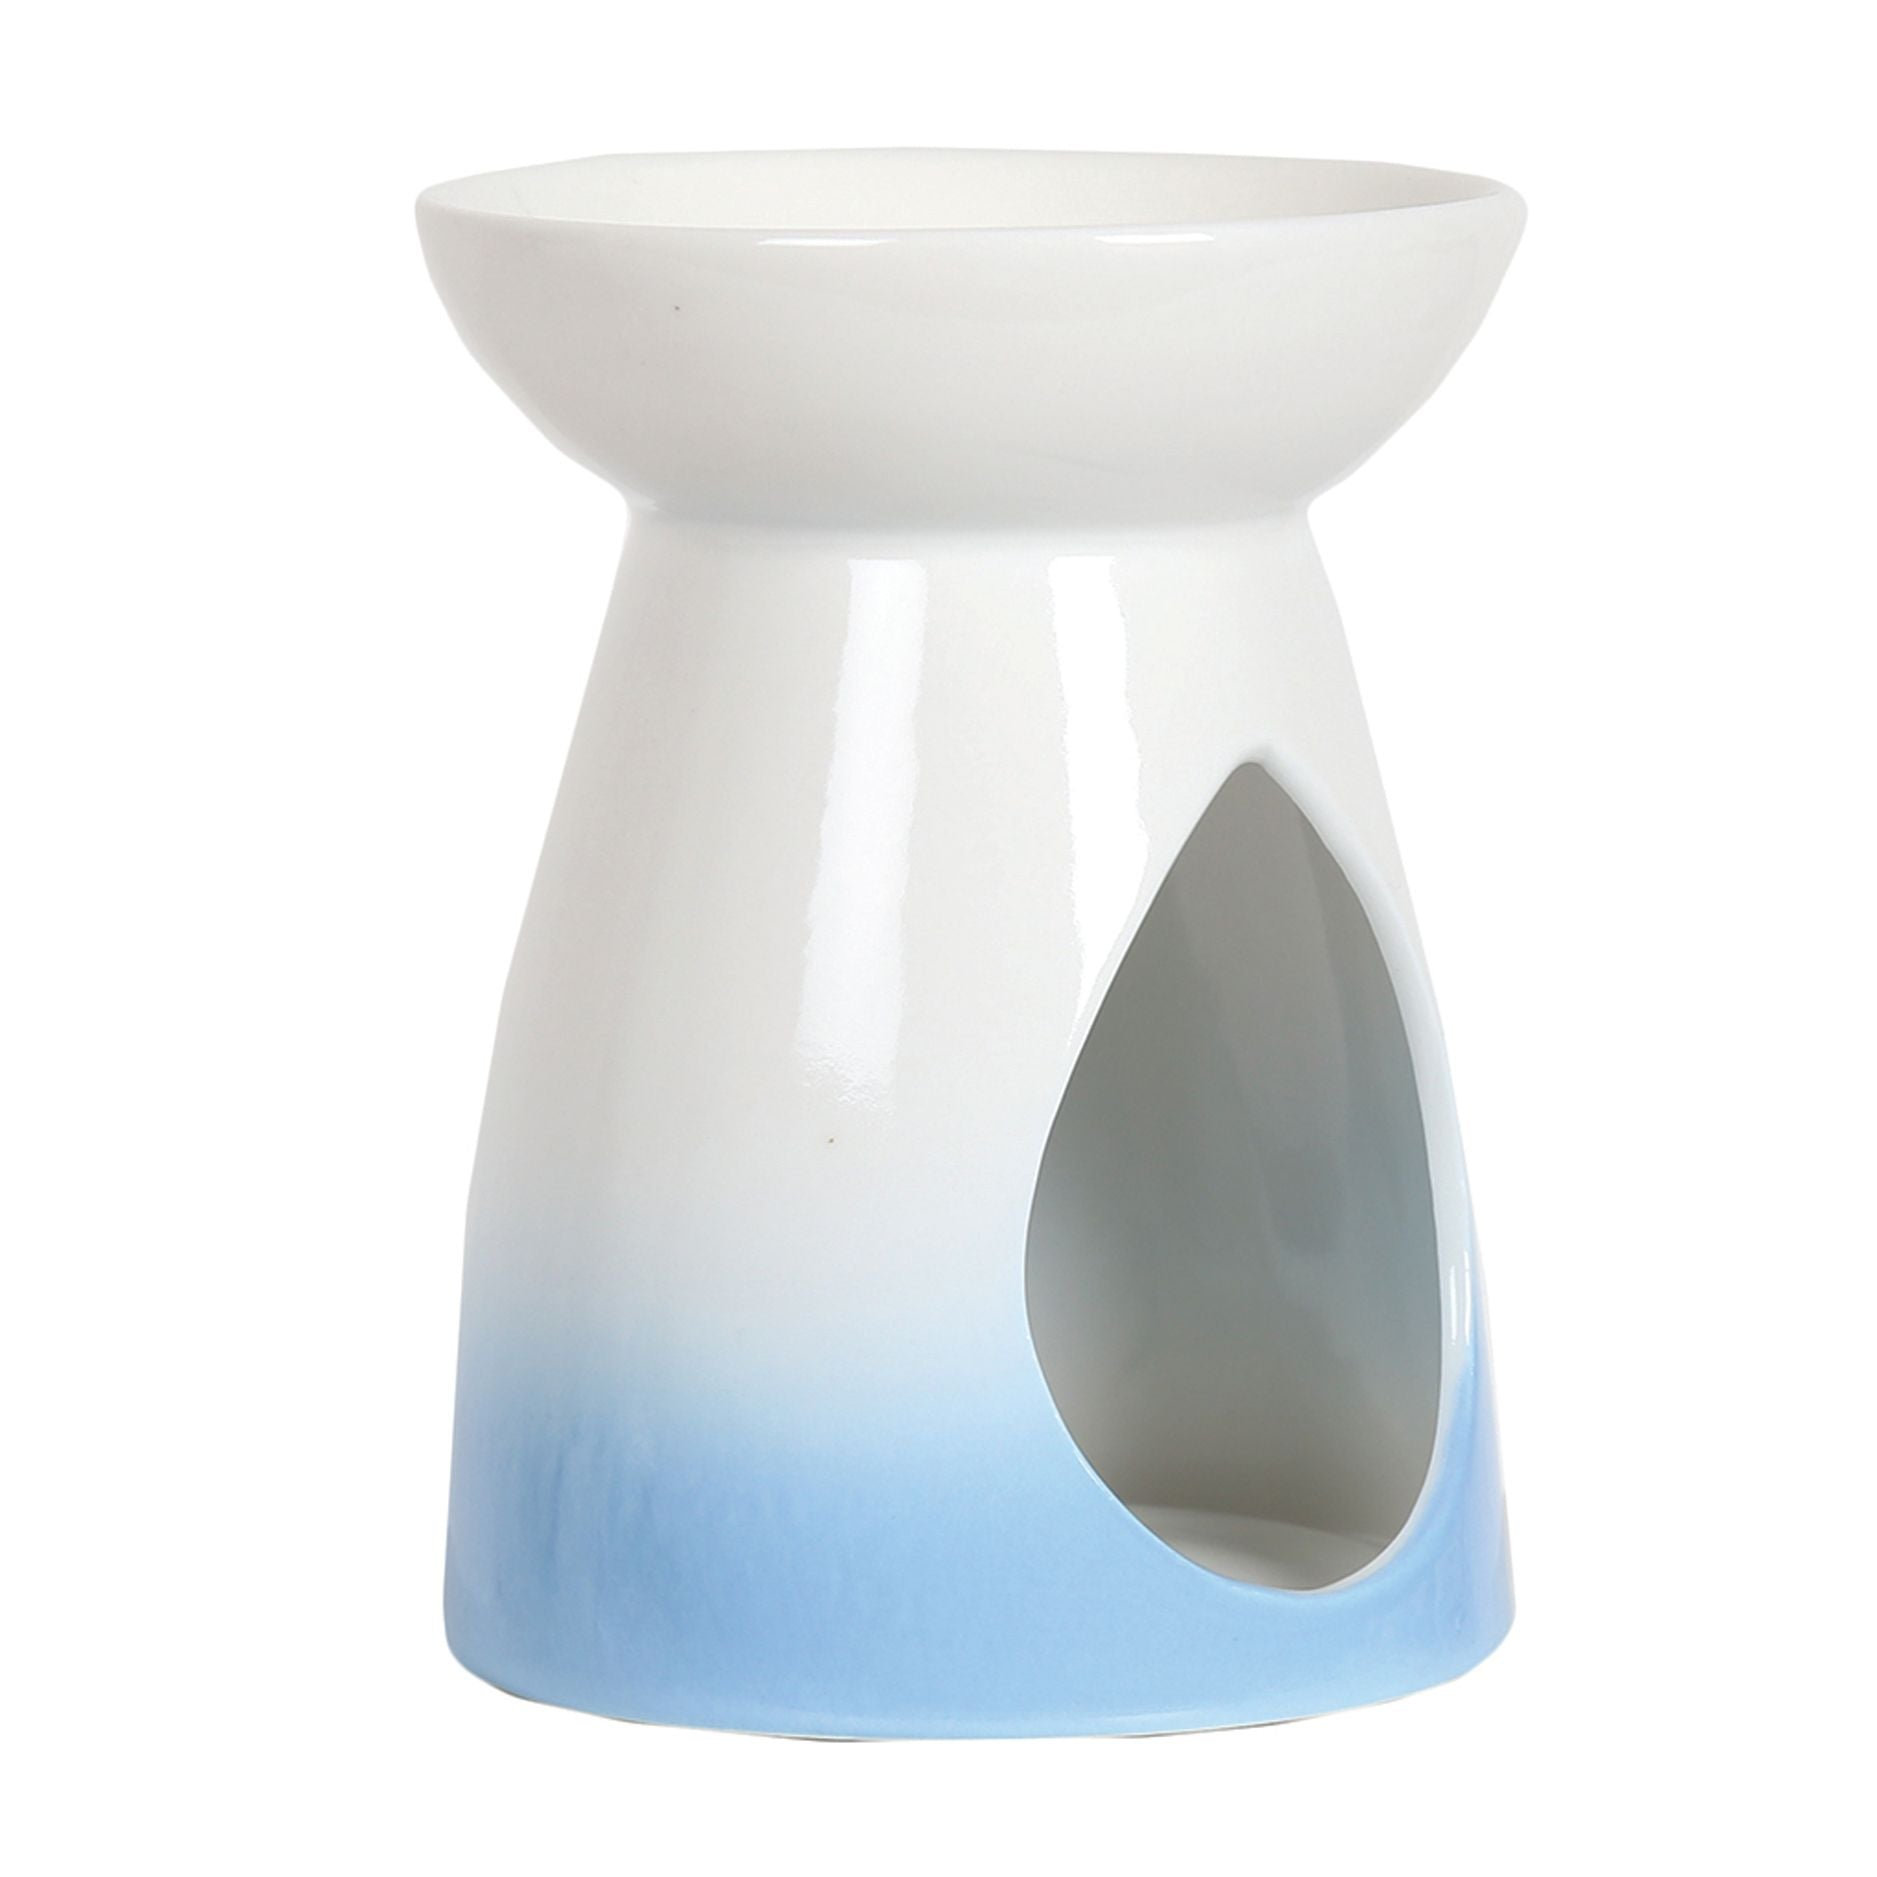 Teardrop Wax Burner